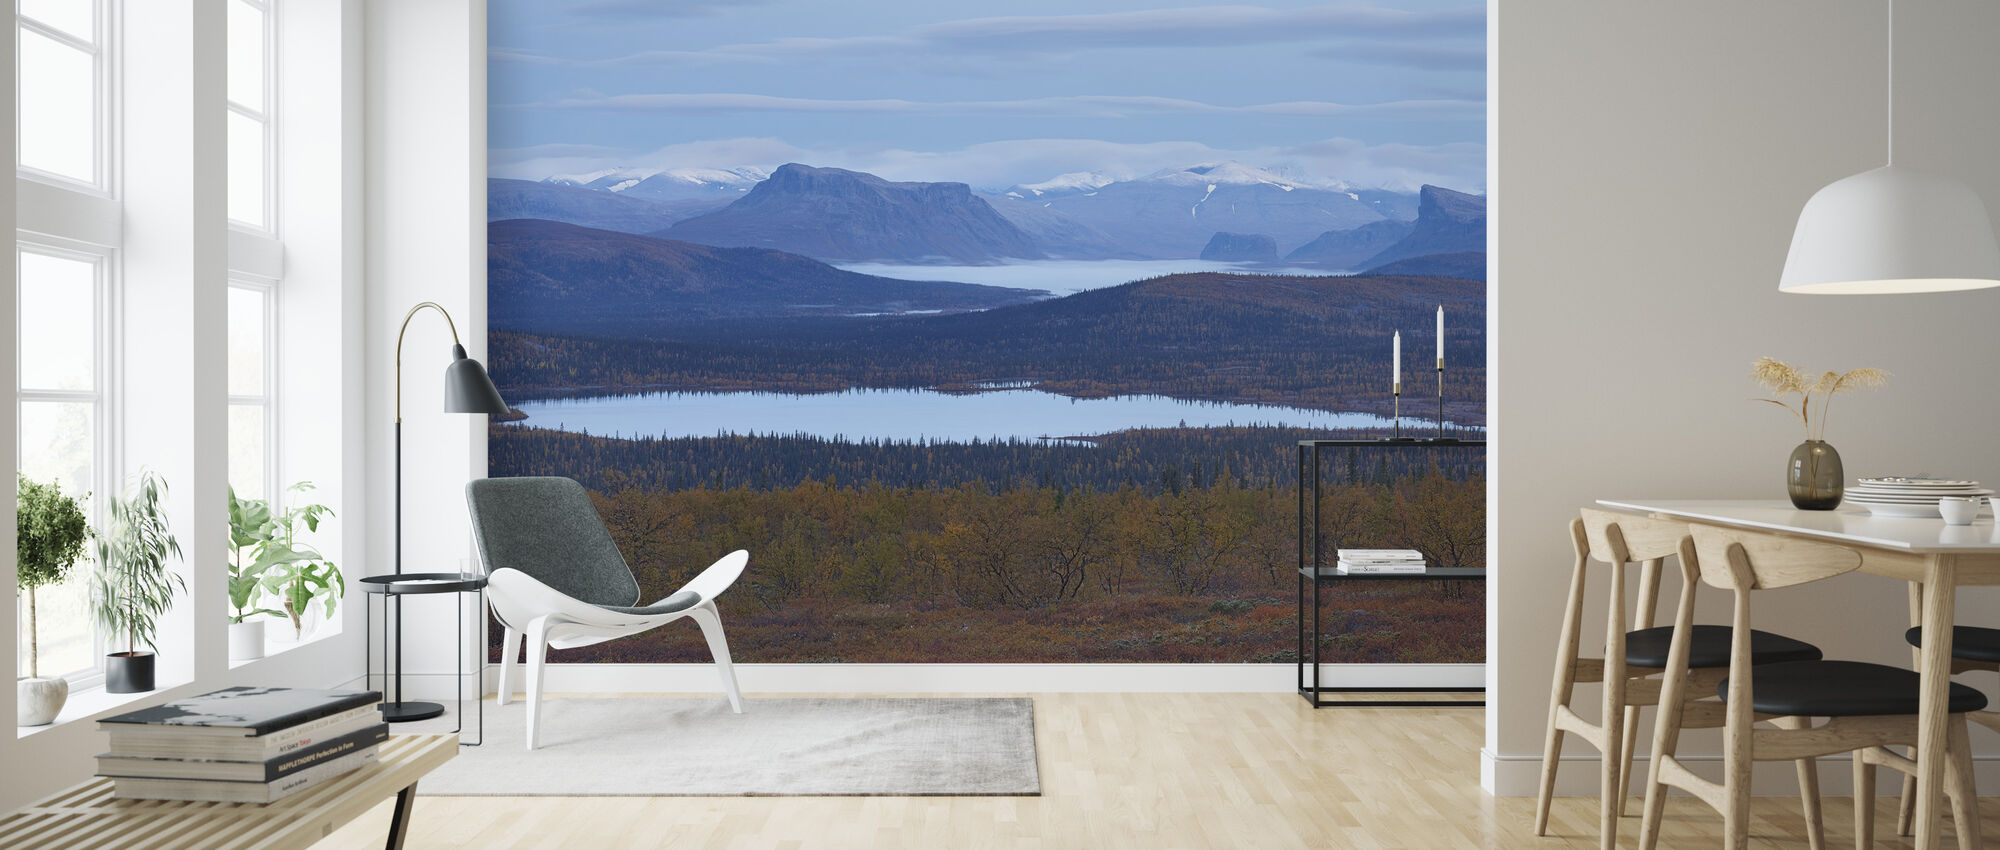 Scenic View of Sarek National Park, Zweden - Behang - Woonkamer